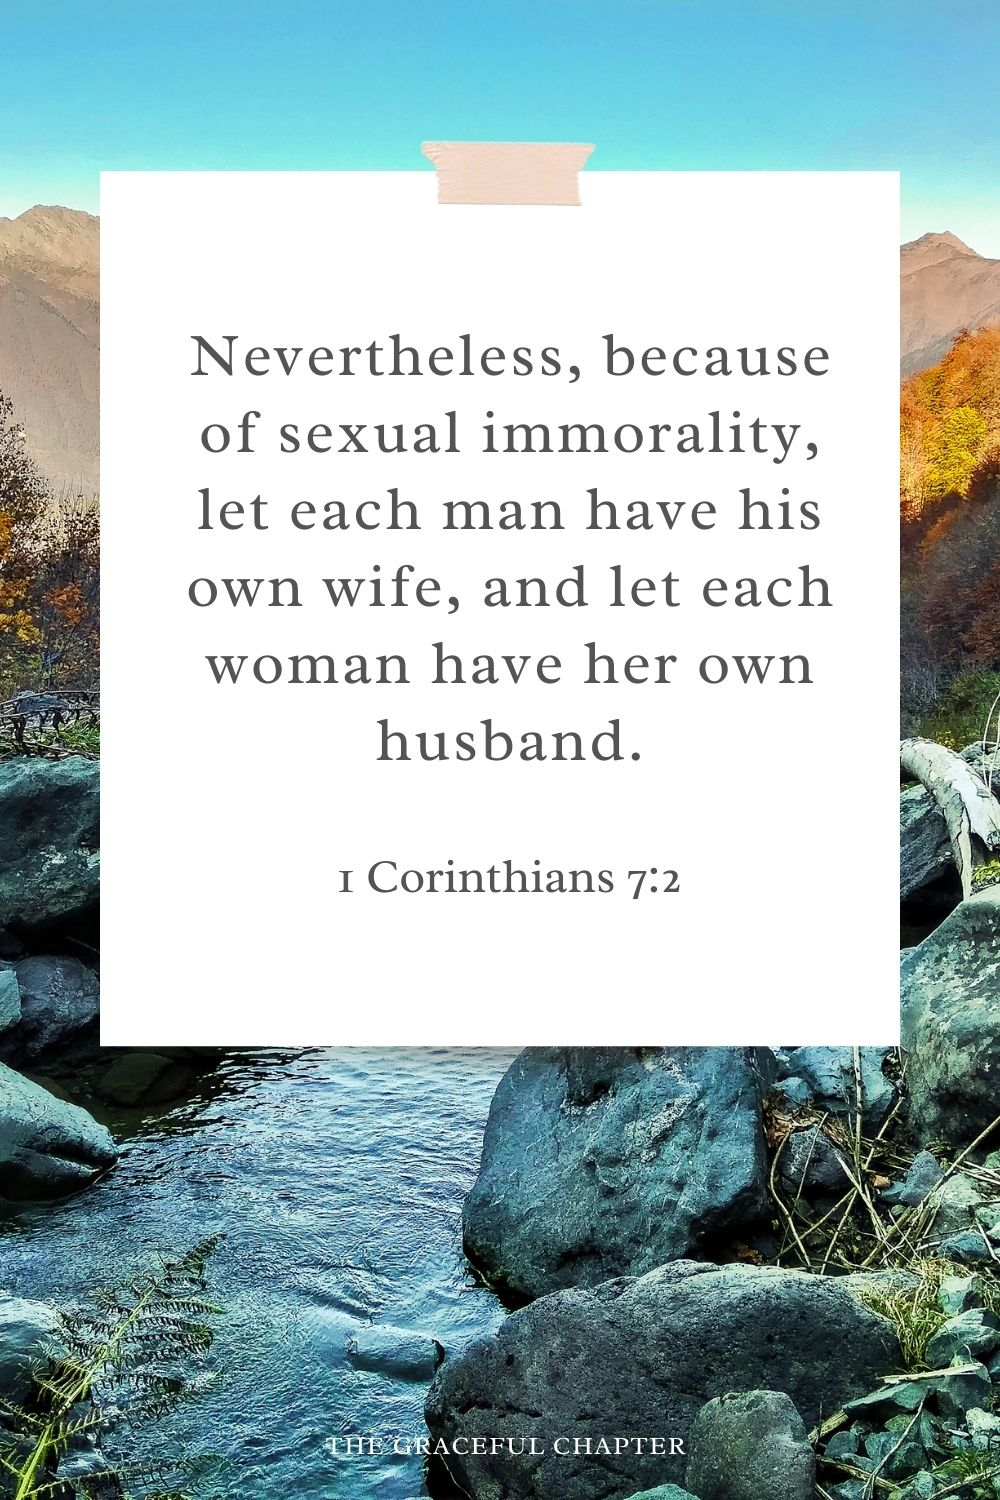 Nevertheless, because of sexual immorality, let each man have his own wife, and let each woman have her own husband. 1 Corinthians 7:2